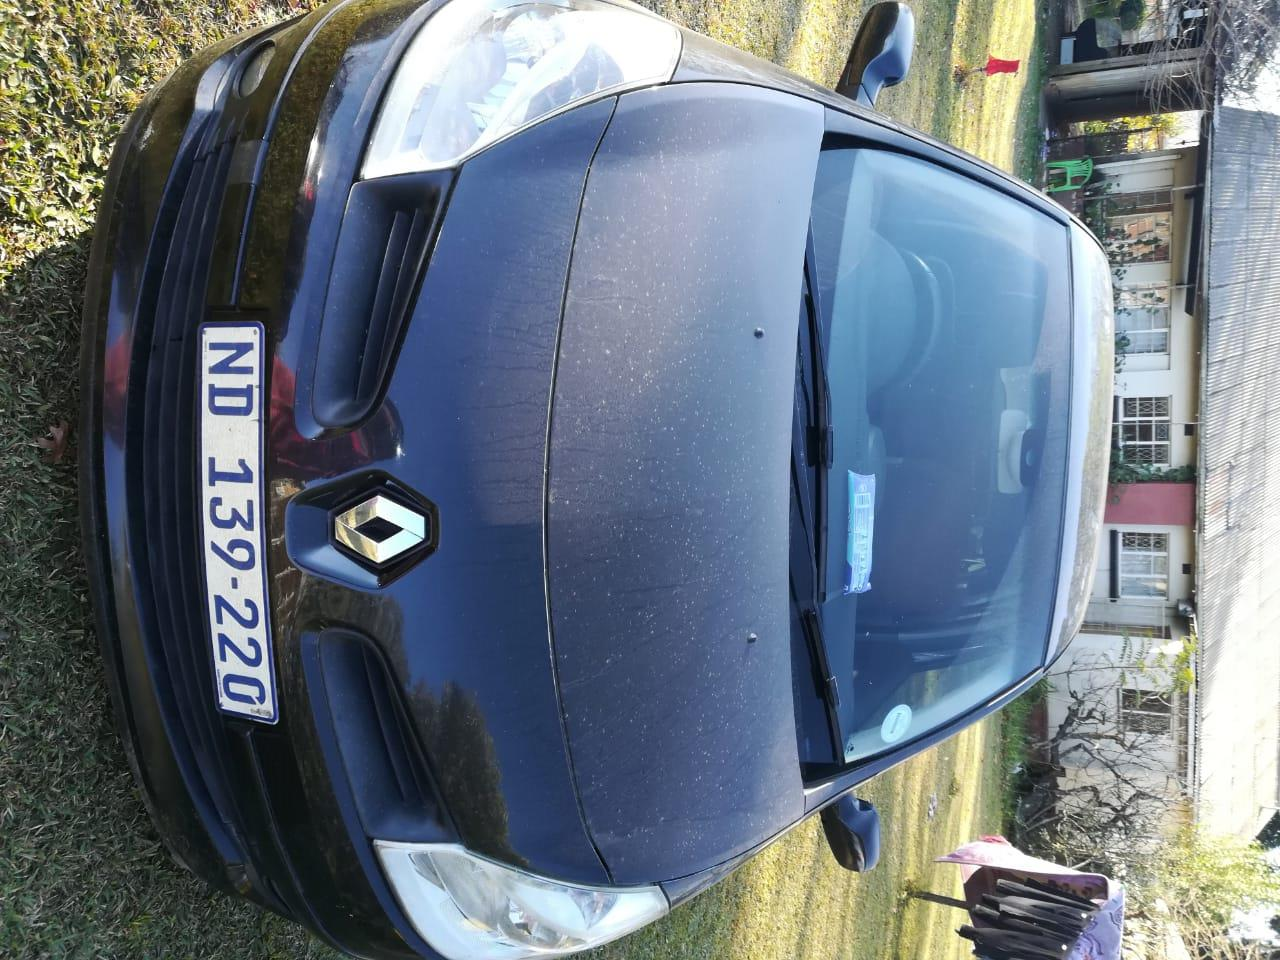 2008 Renault Clio 1.4 Extreme limited edition 5 door